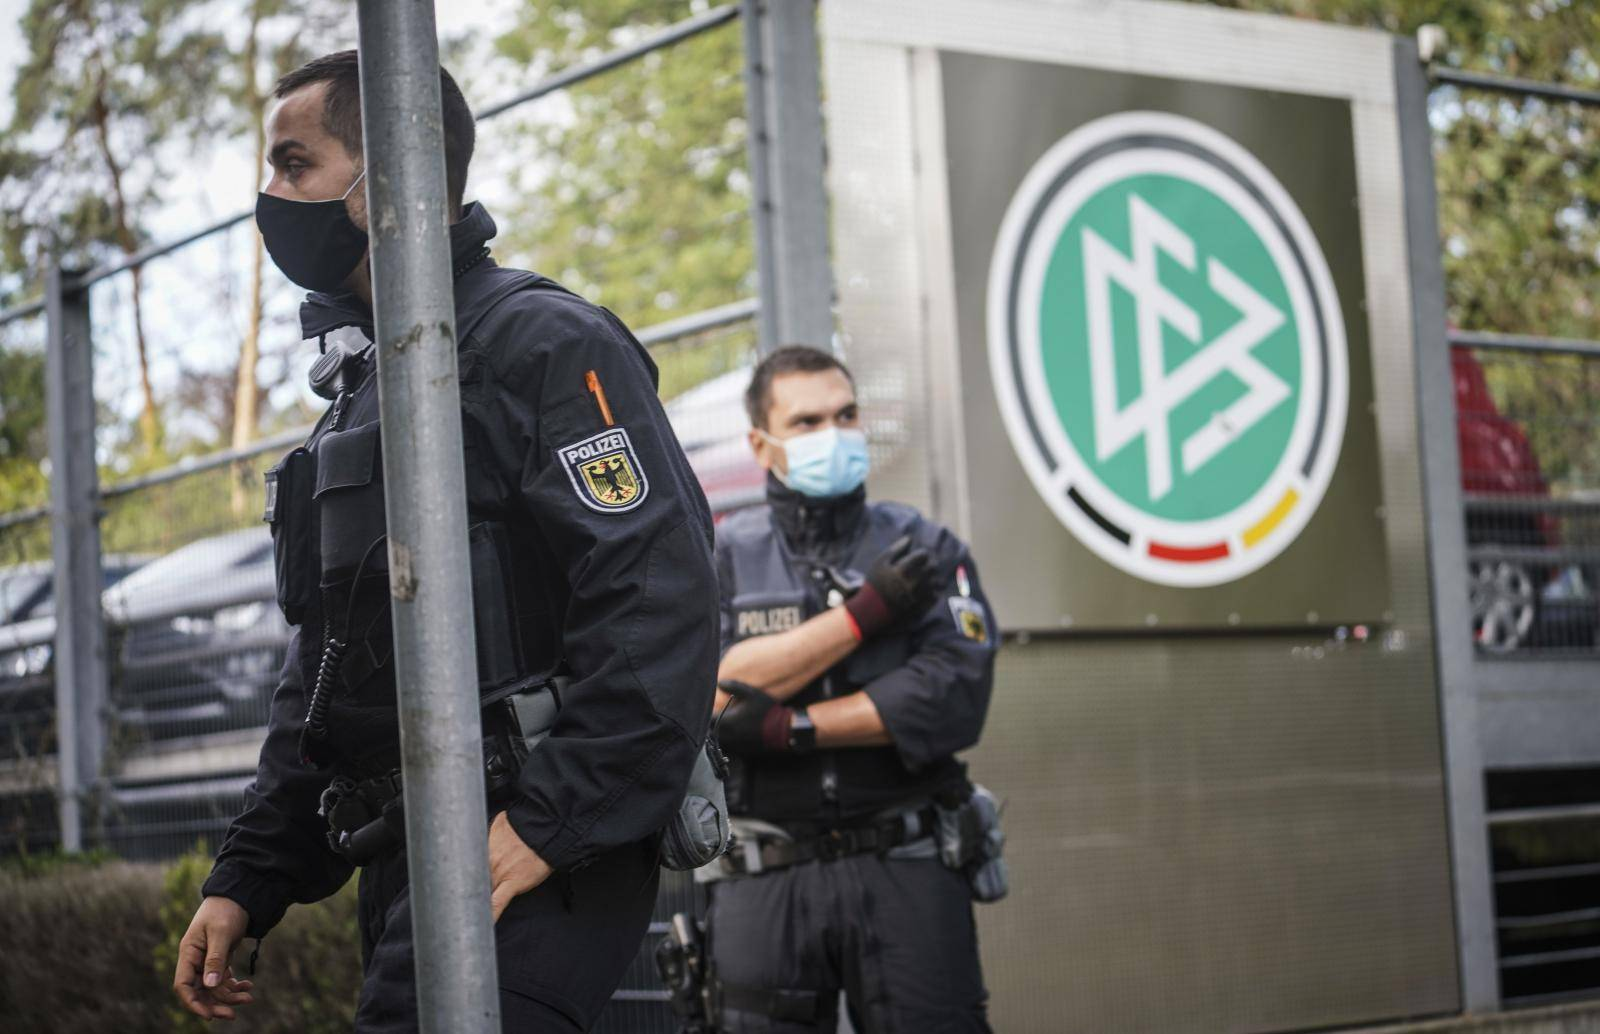 Search at DFB